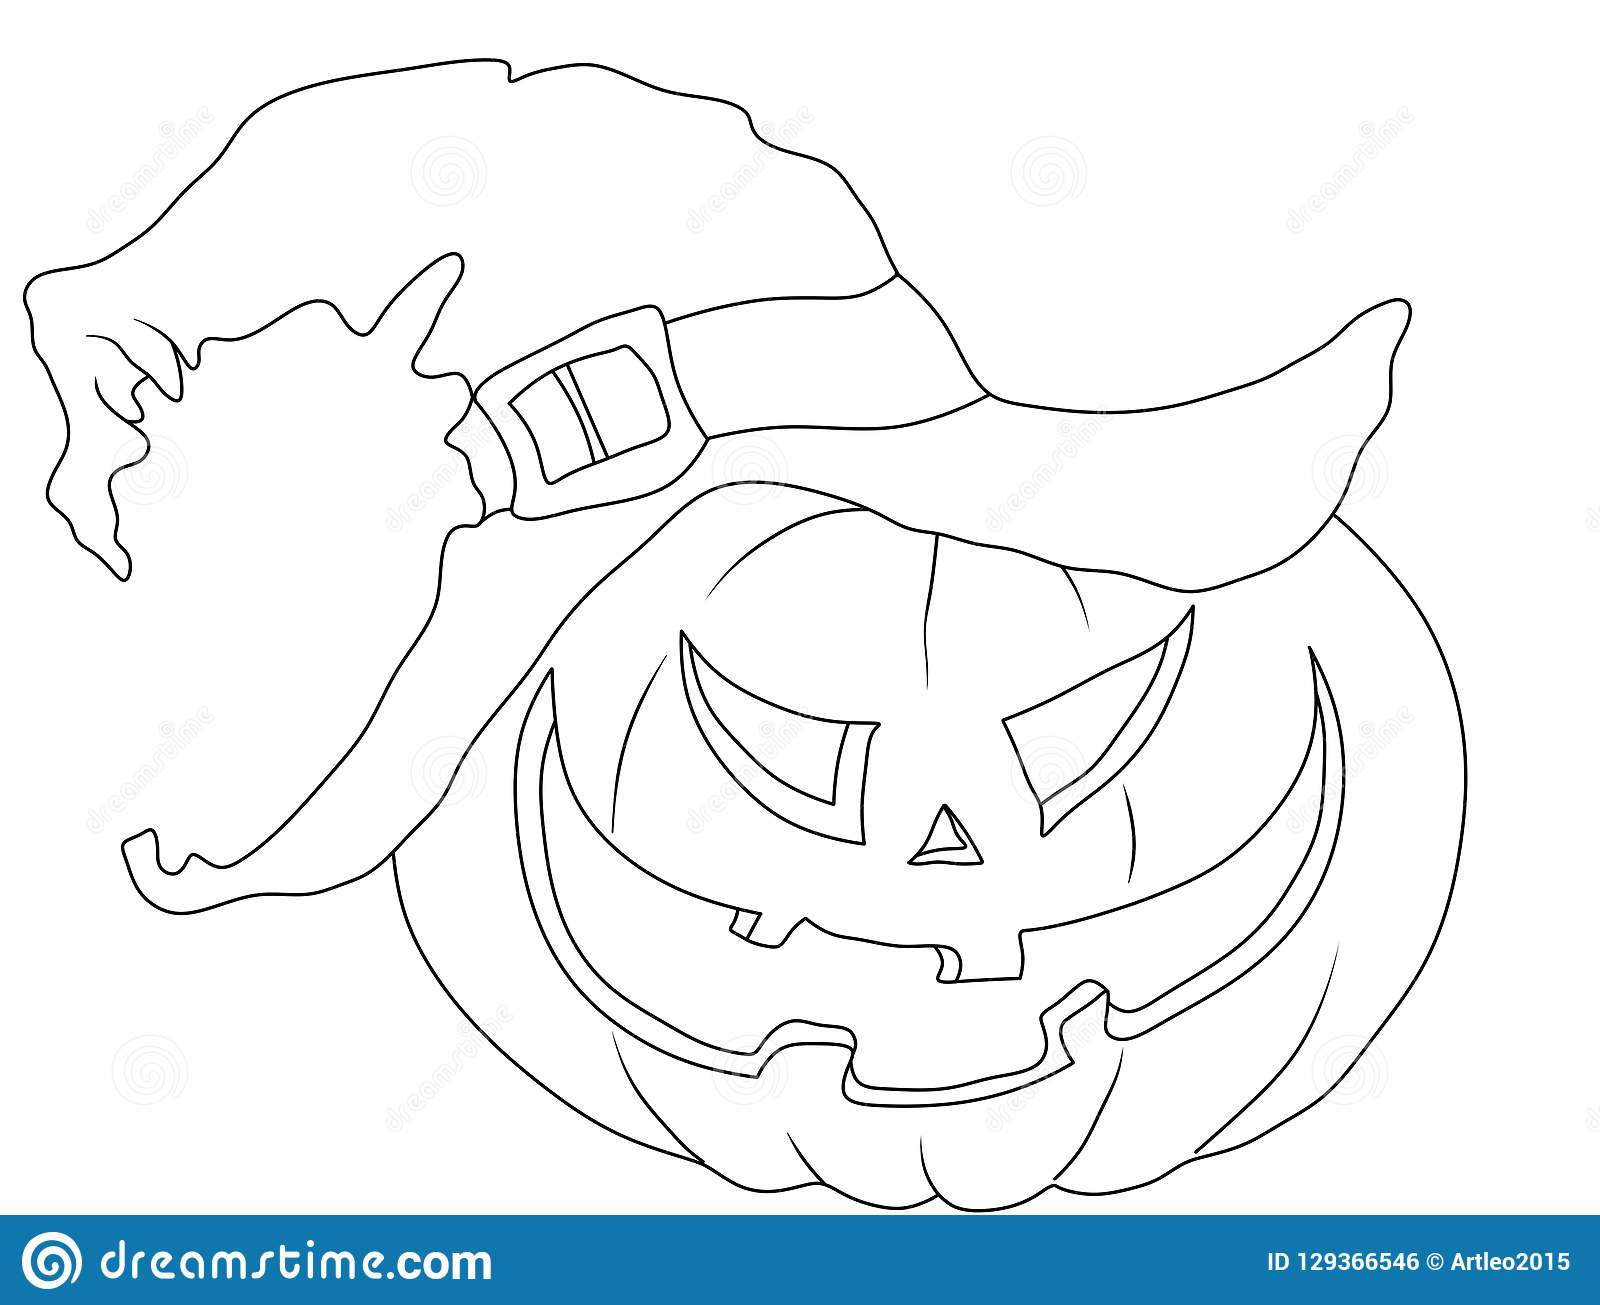 Halloween Coloring Page Pumpkin In The Hat Stock Illustration Illustration Of Design Contour 129366546